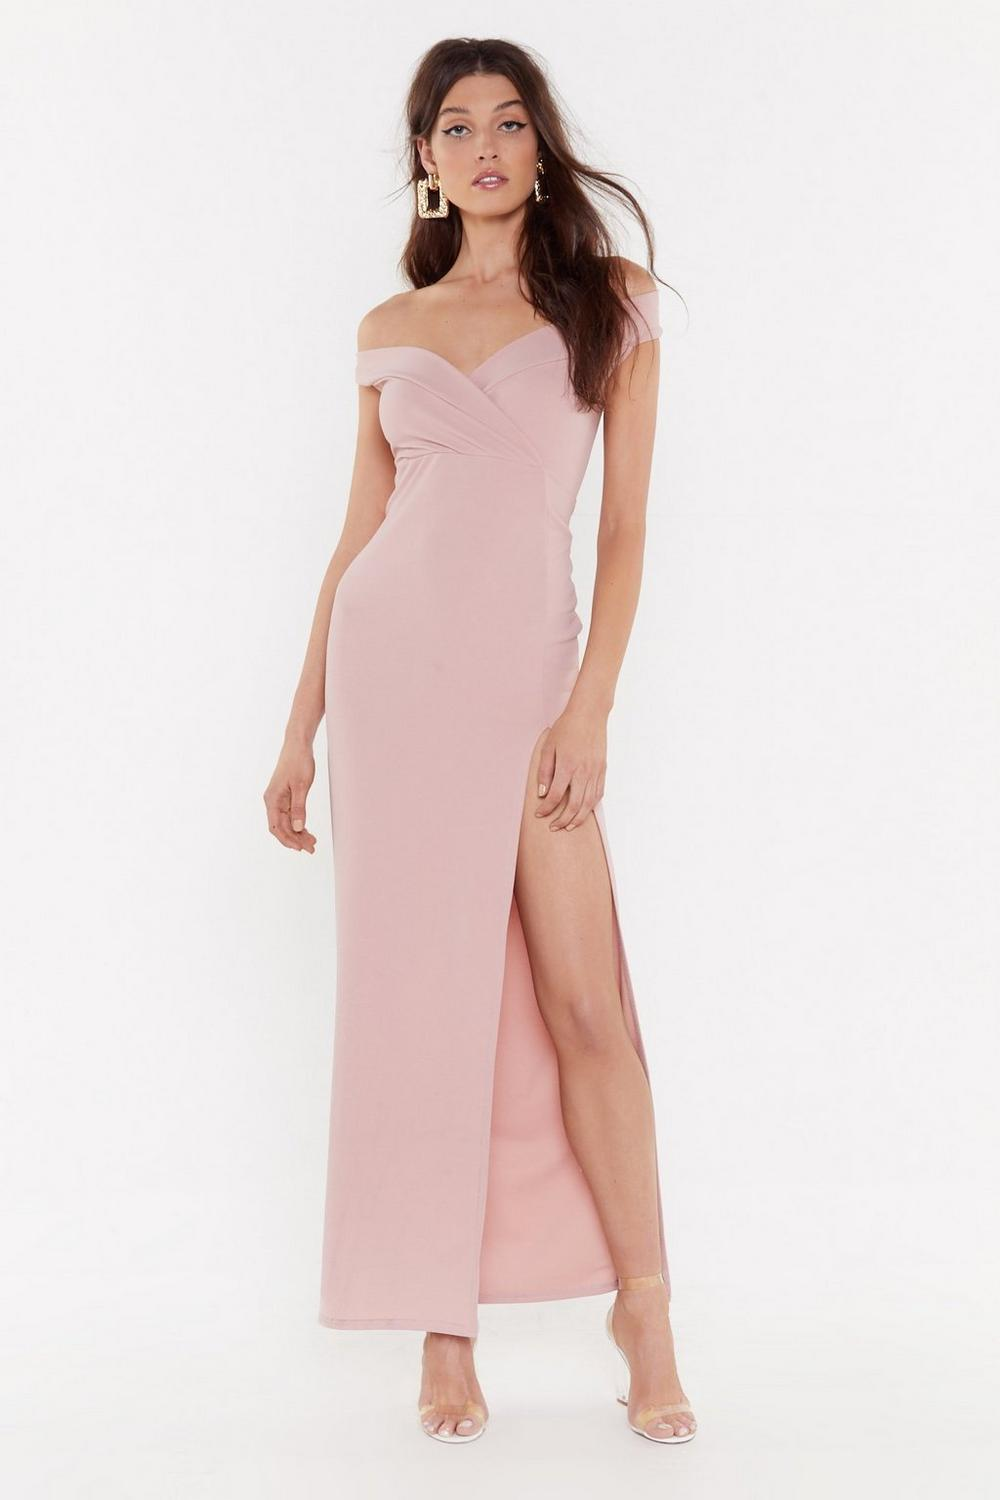 This is Split Off-the-Shoulder Maxi Dress